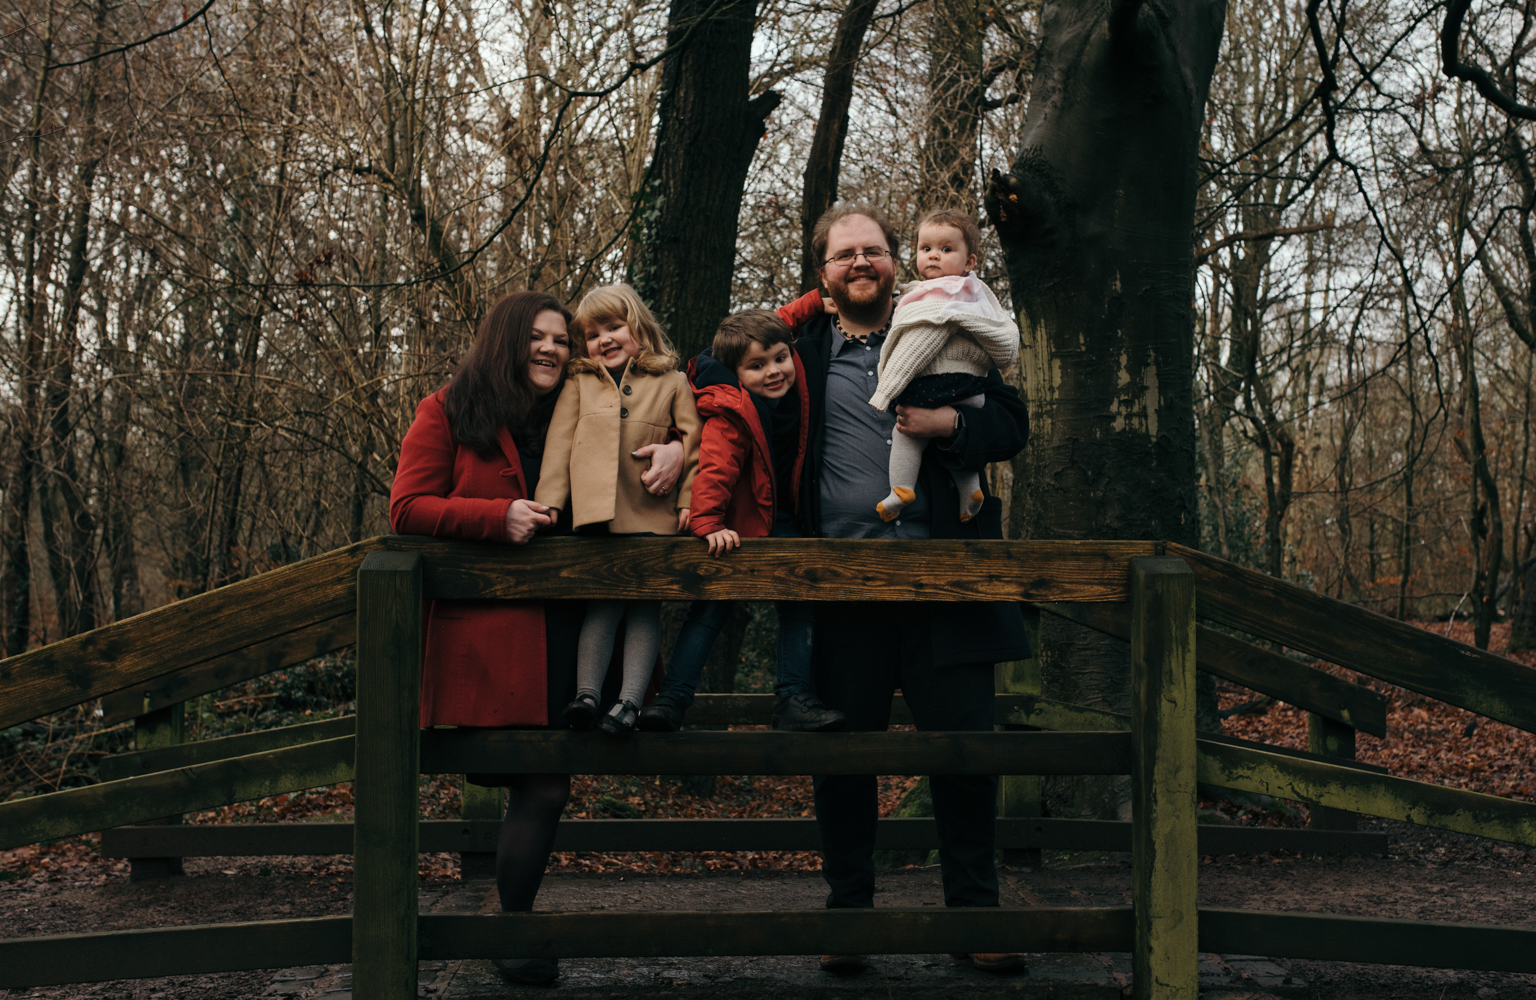 Another family group photograph standing on a bridge in the woods